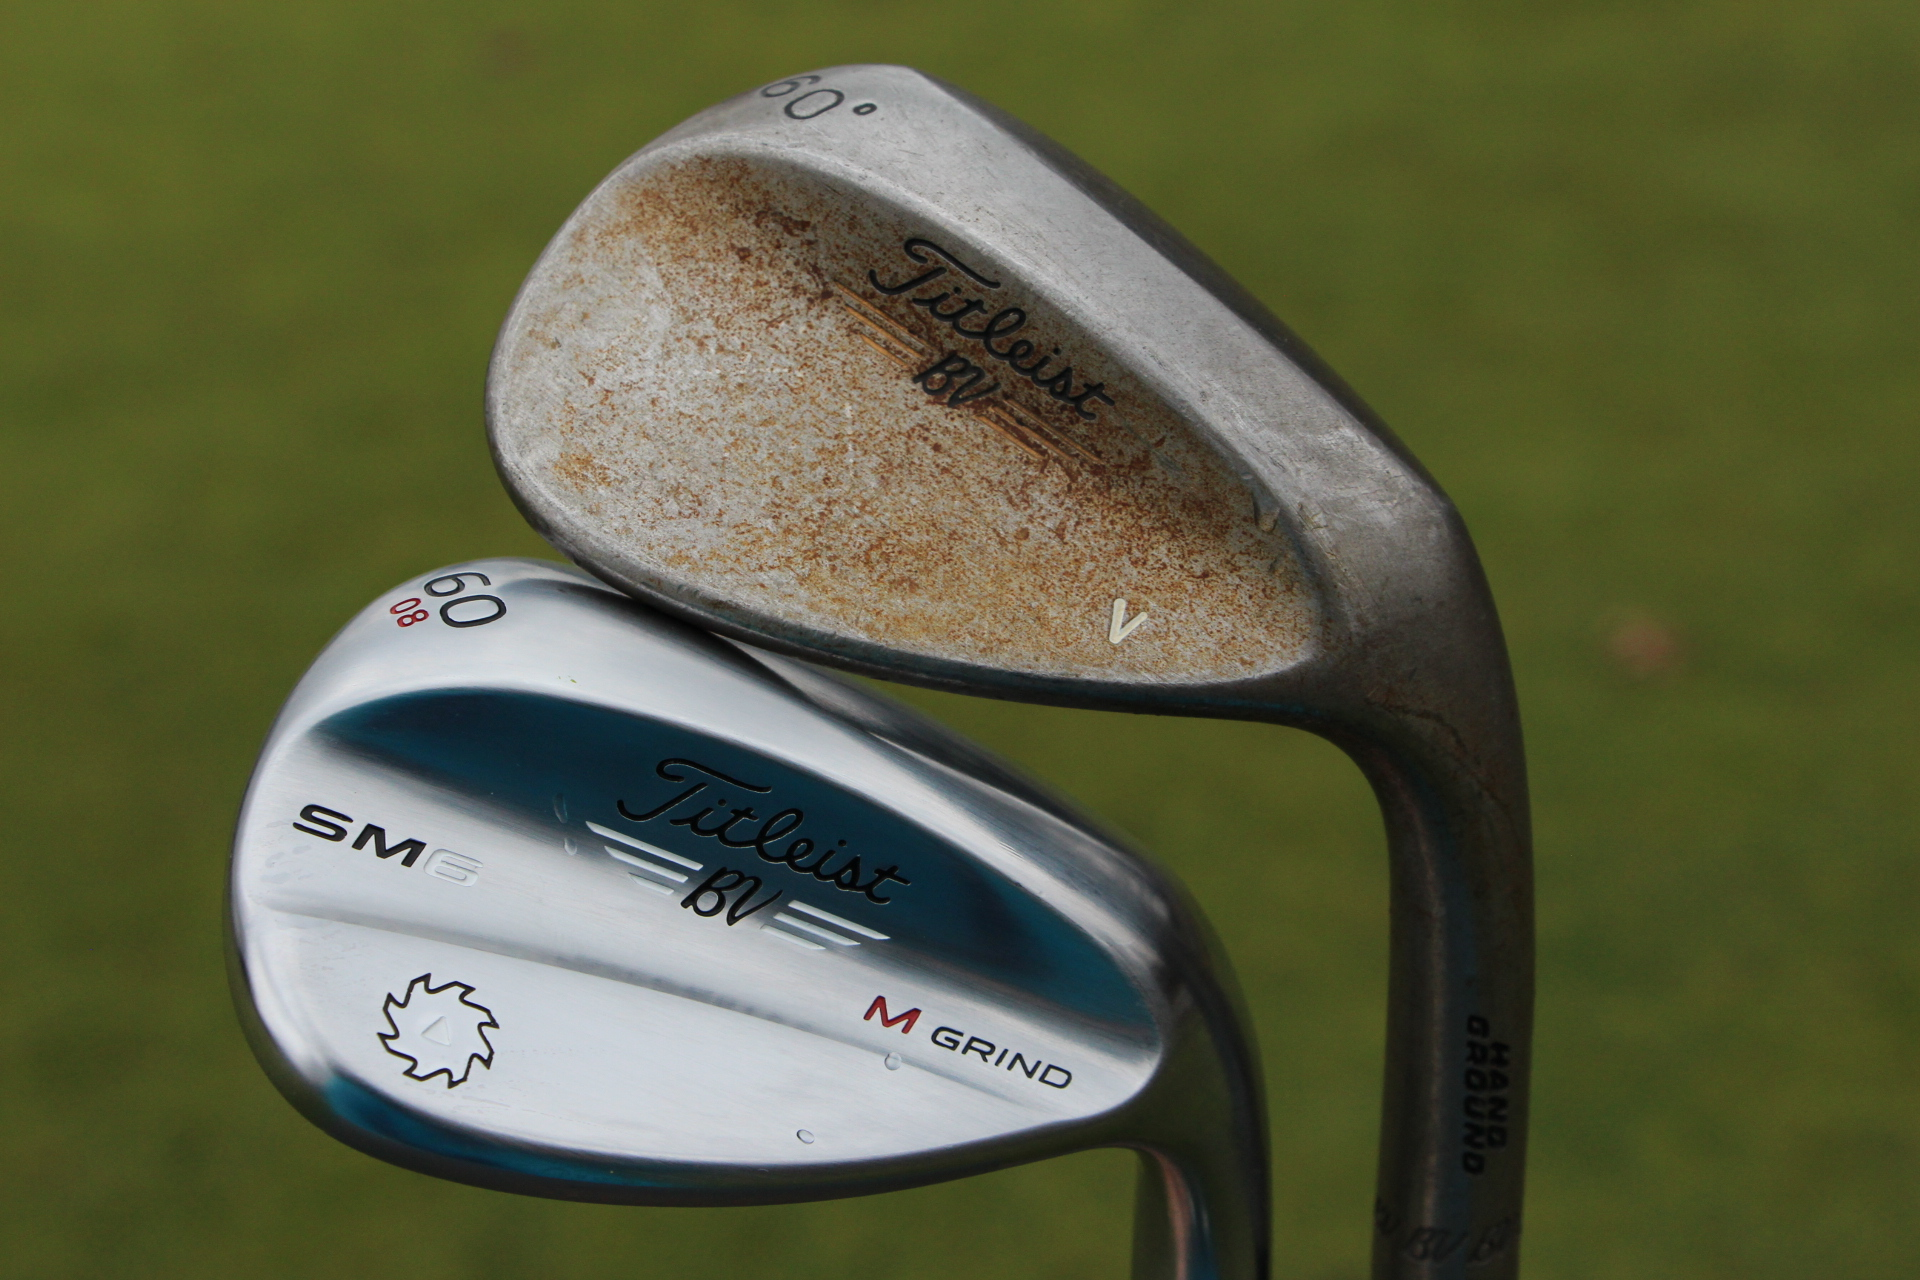 A Vokey Hand Ground wedge with a raw finish (above).